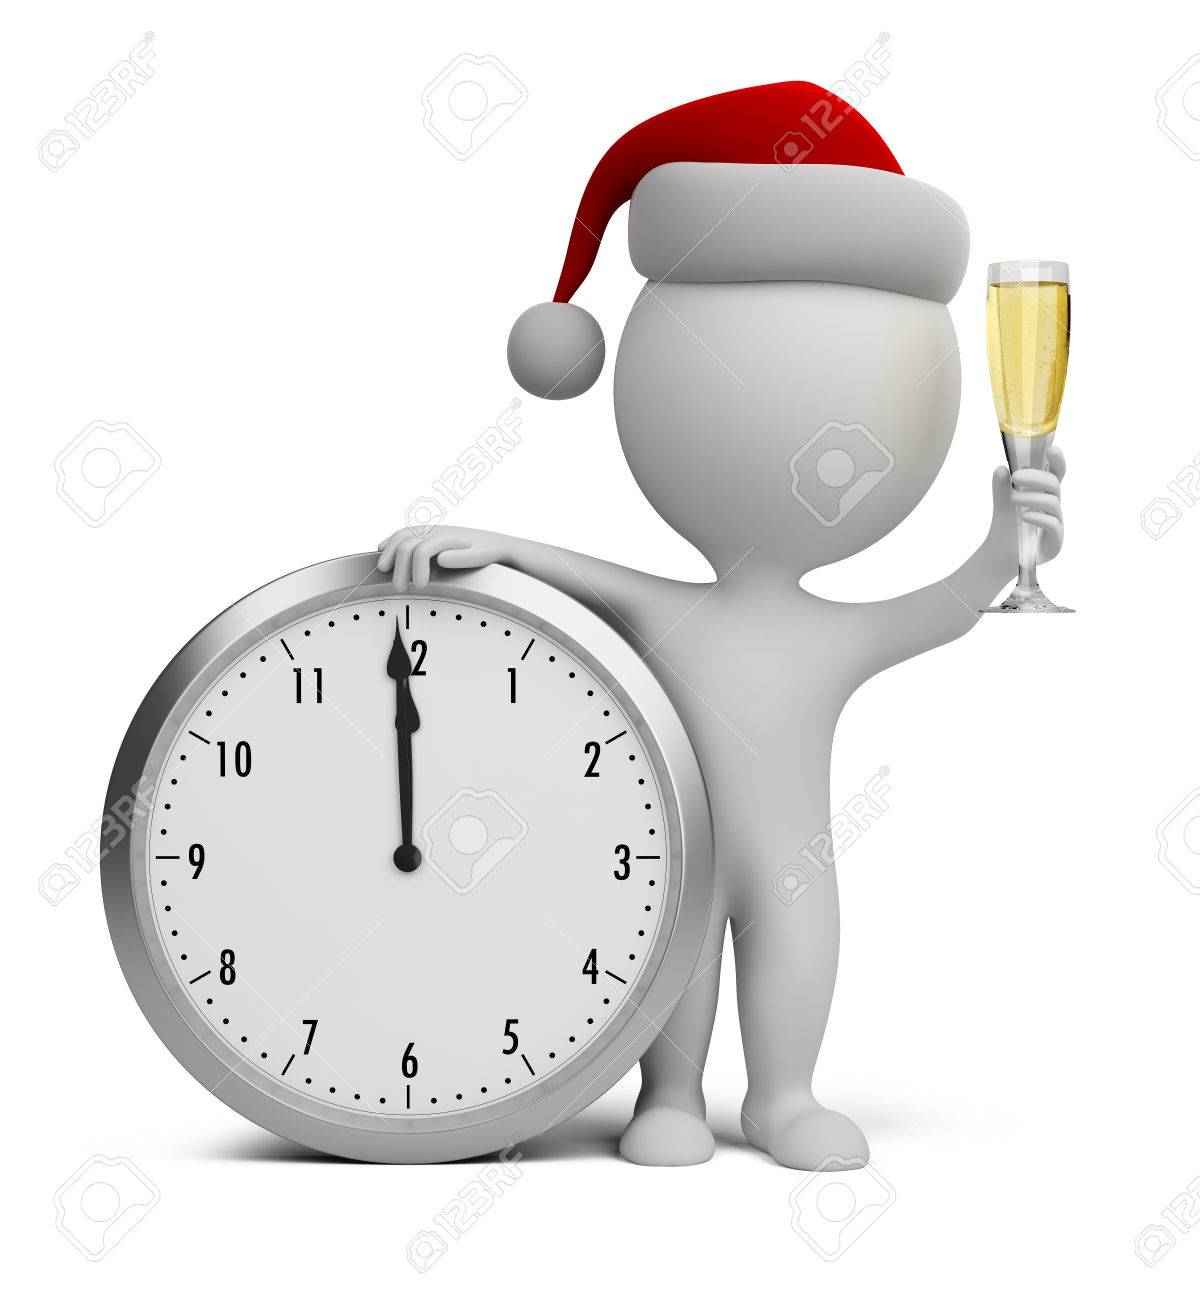 3d small person - Santa with a glass of champagne next to the clock 3d image - 24561294